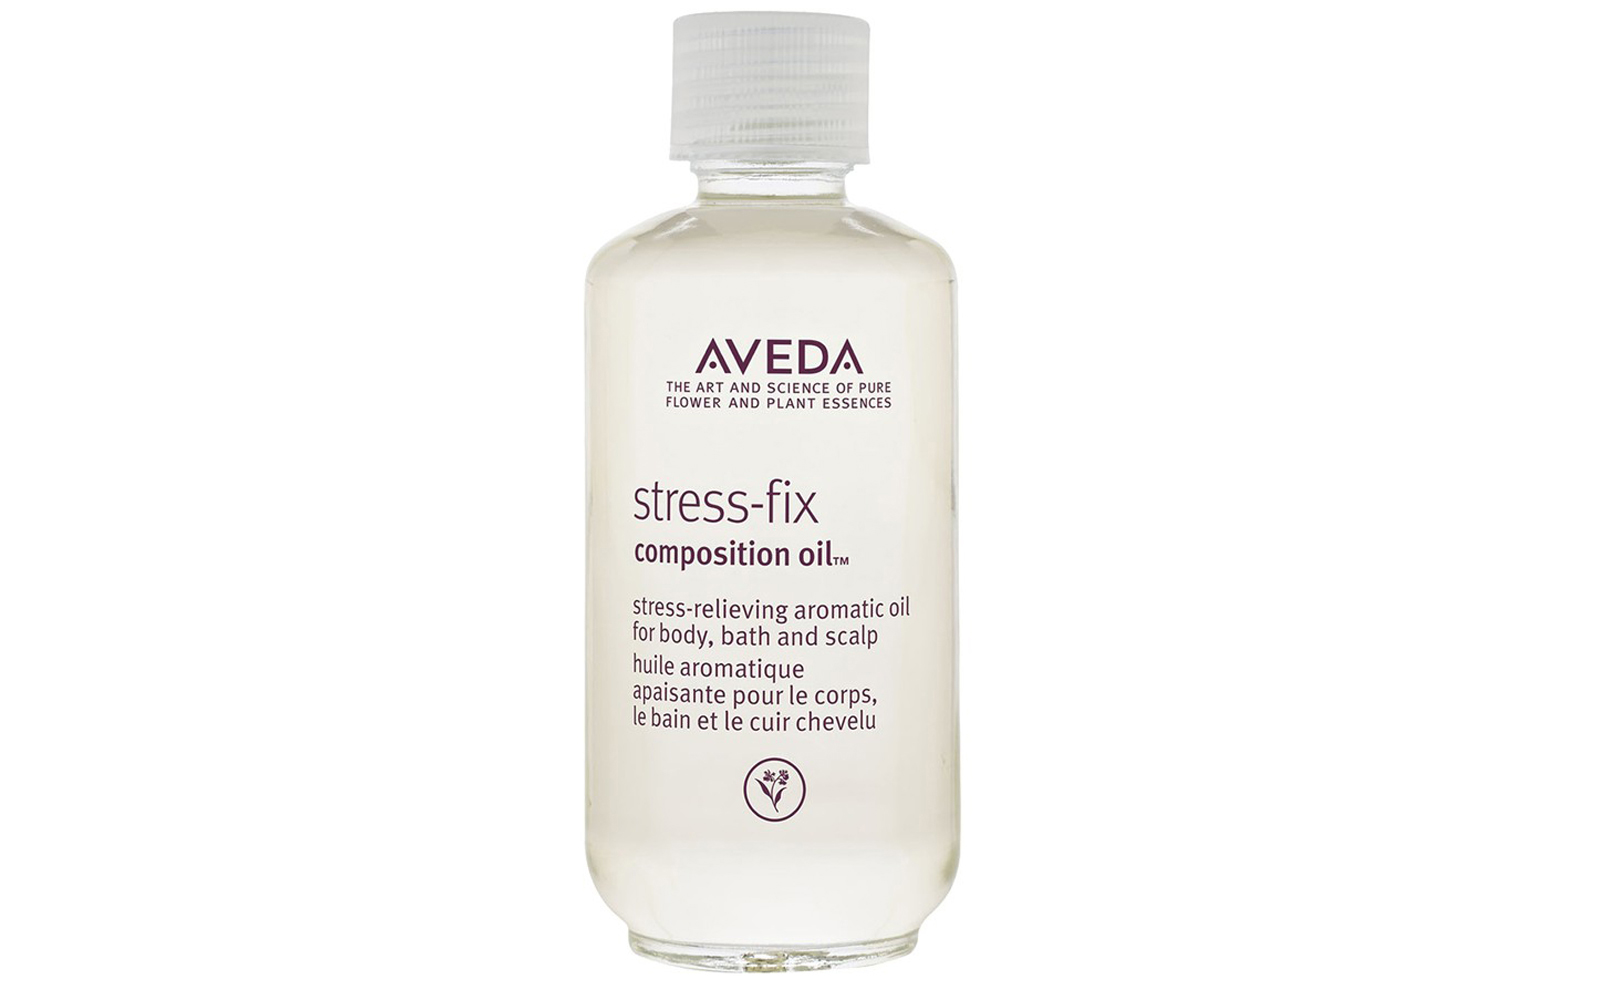 Aveda's Stress-Fix Composition Oil Review